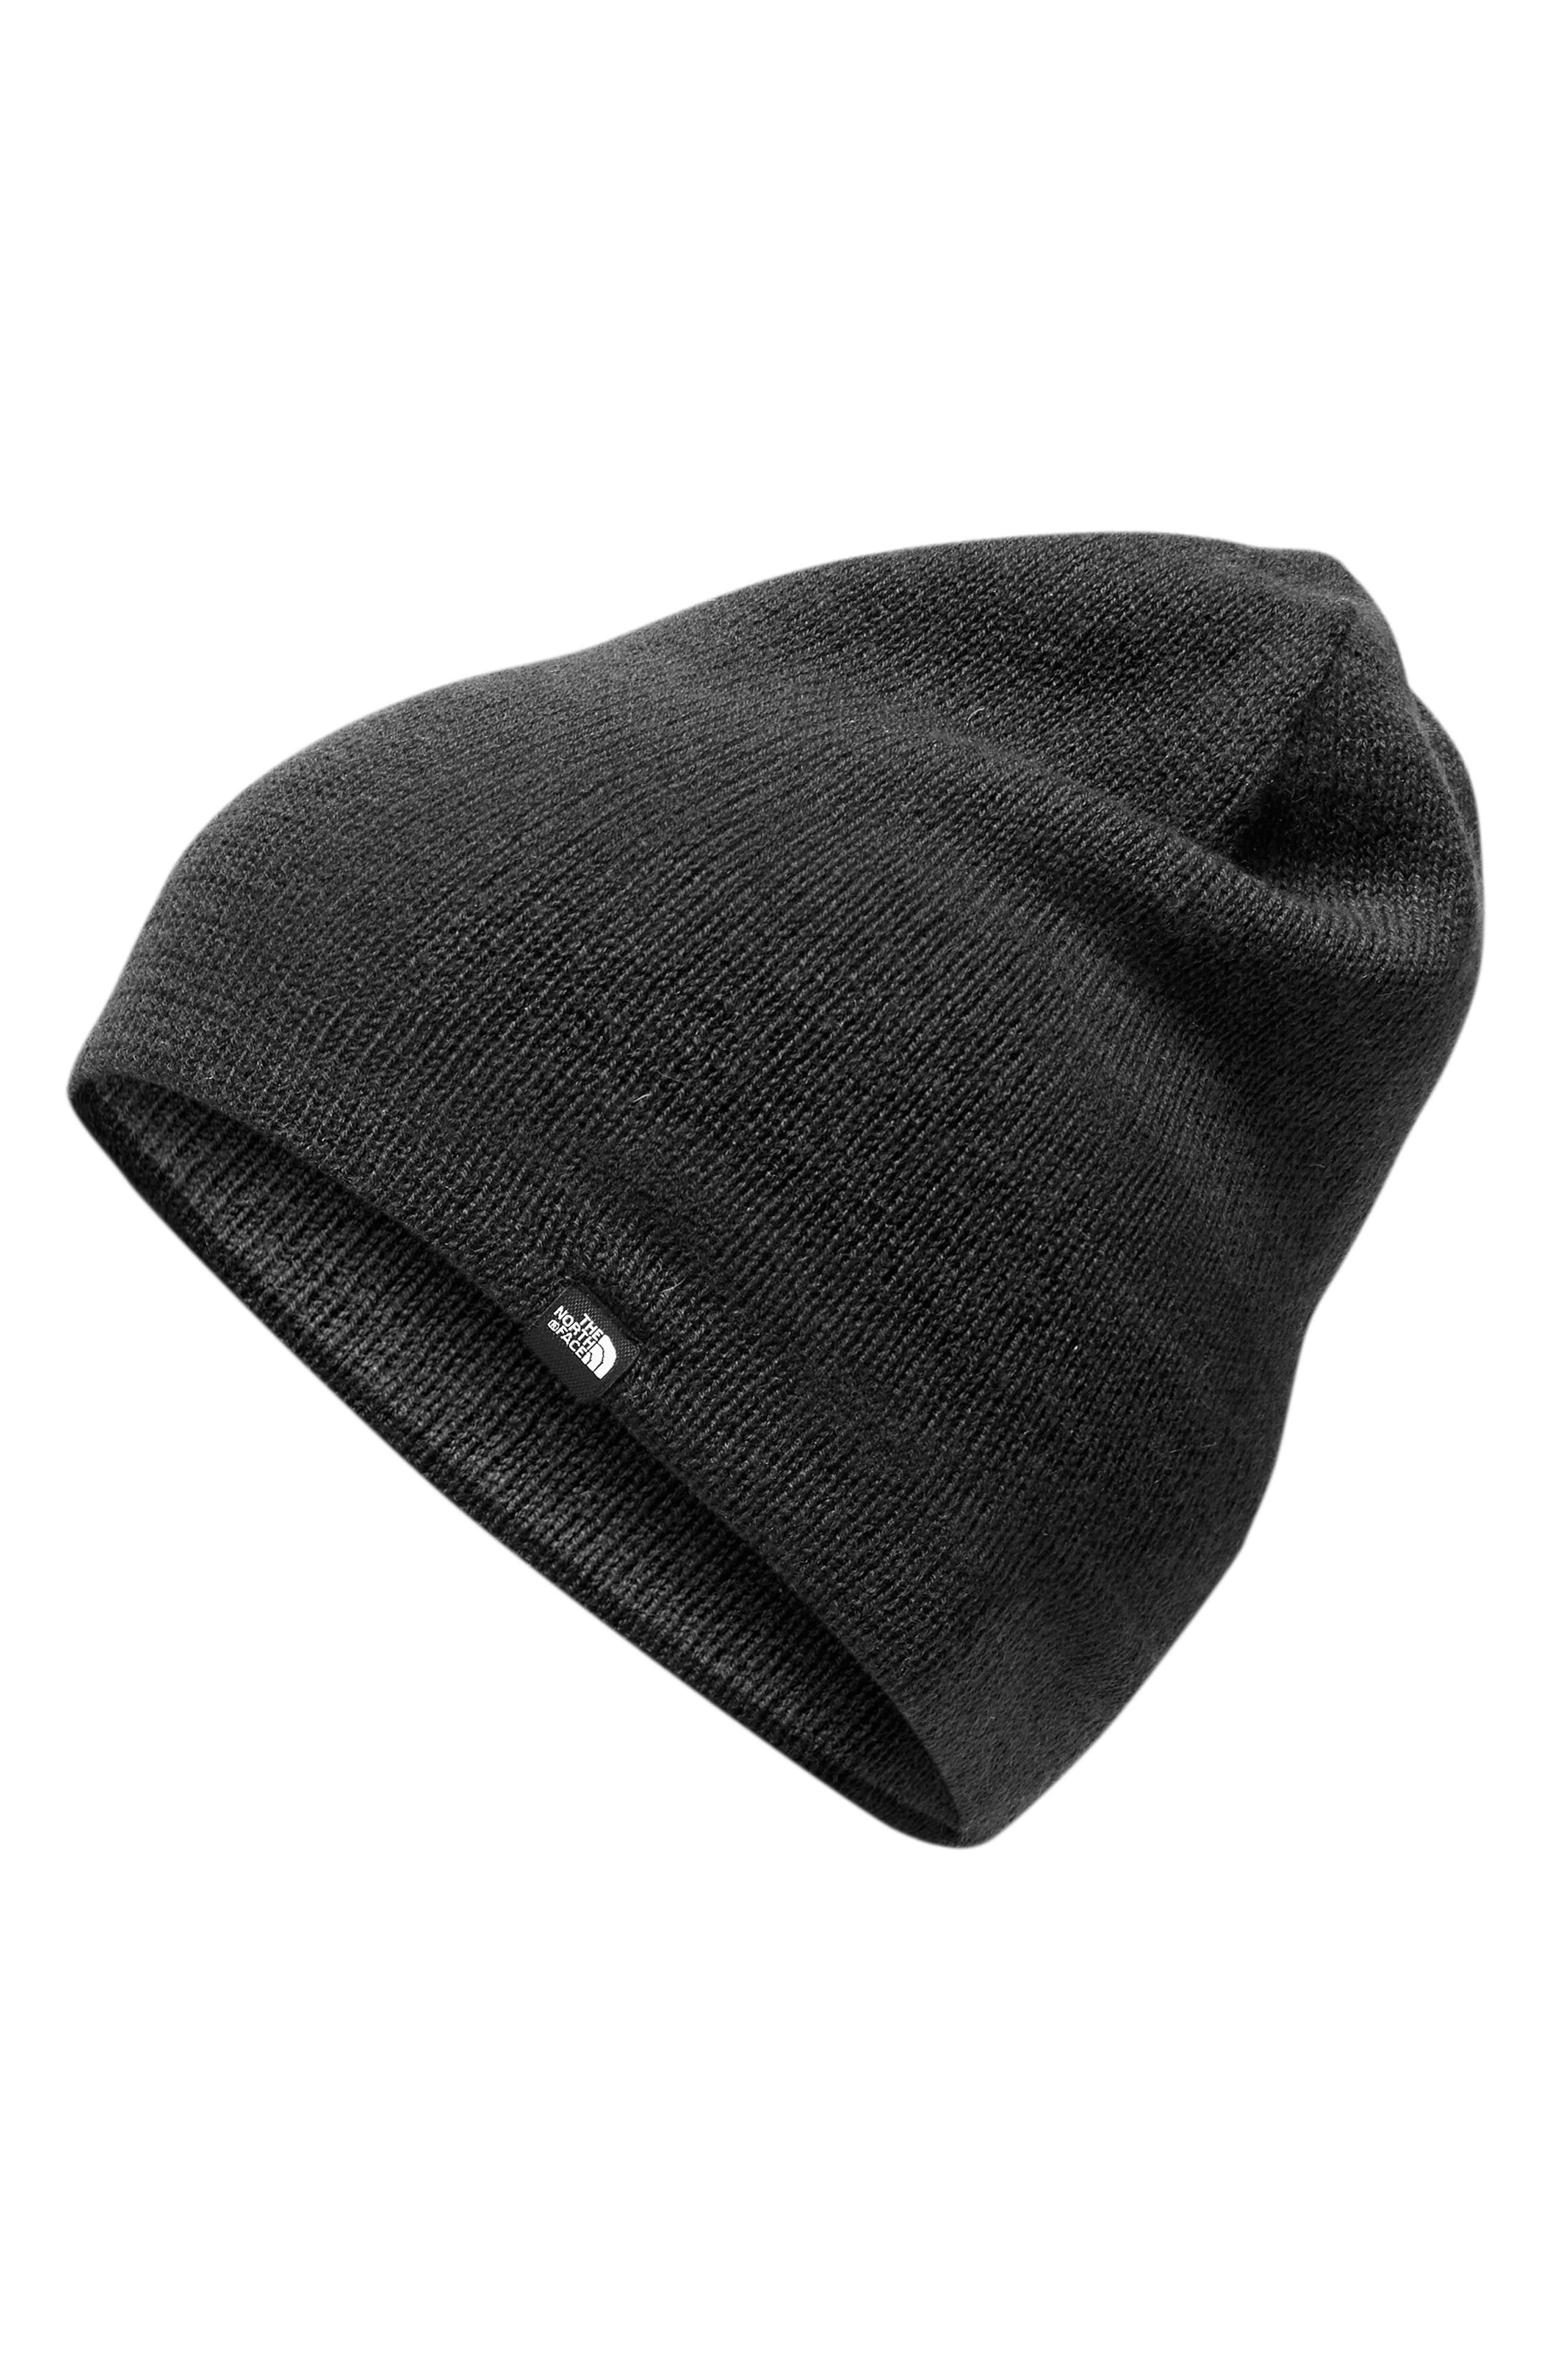 Reversible Merino Wool Beanie,                         Main,                         color, BLACK/DARK GREY HEATHER